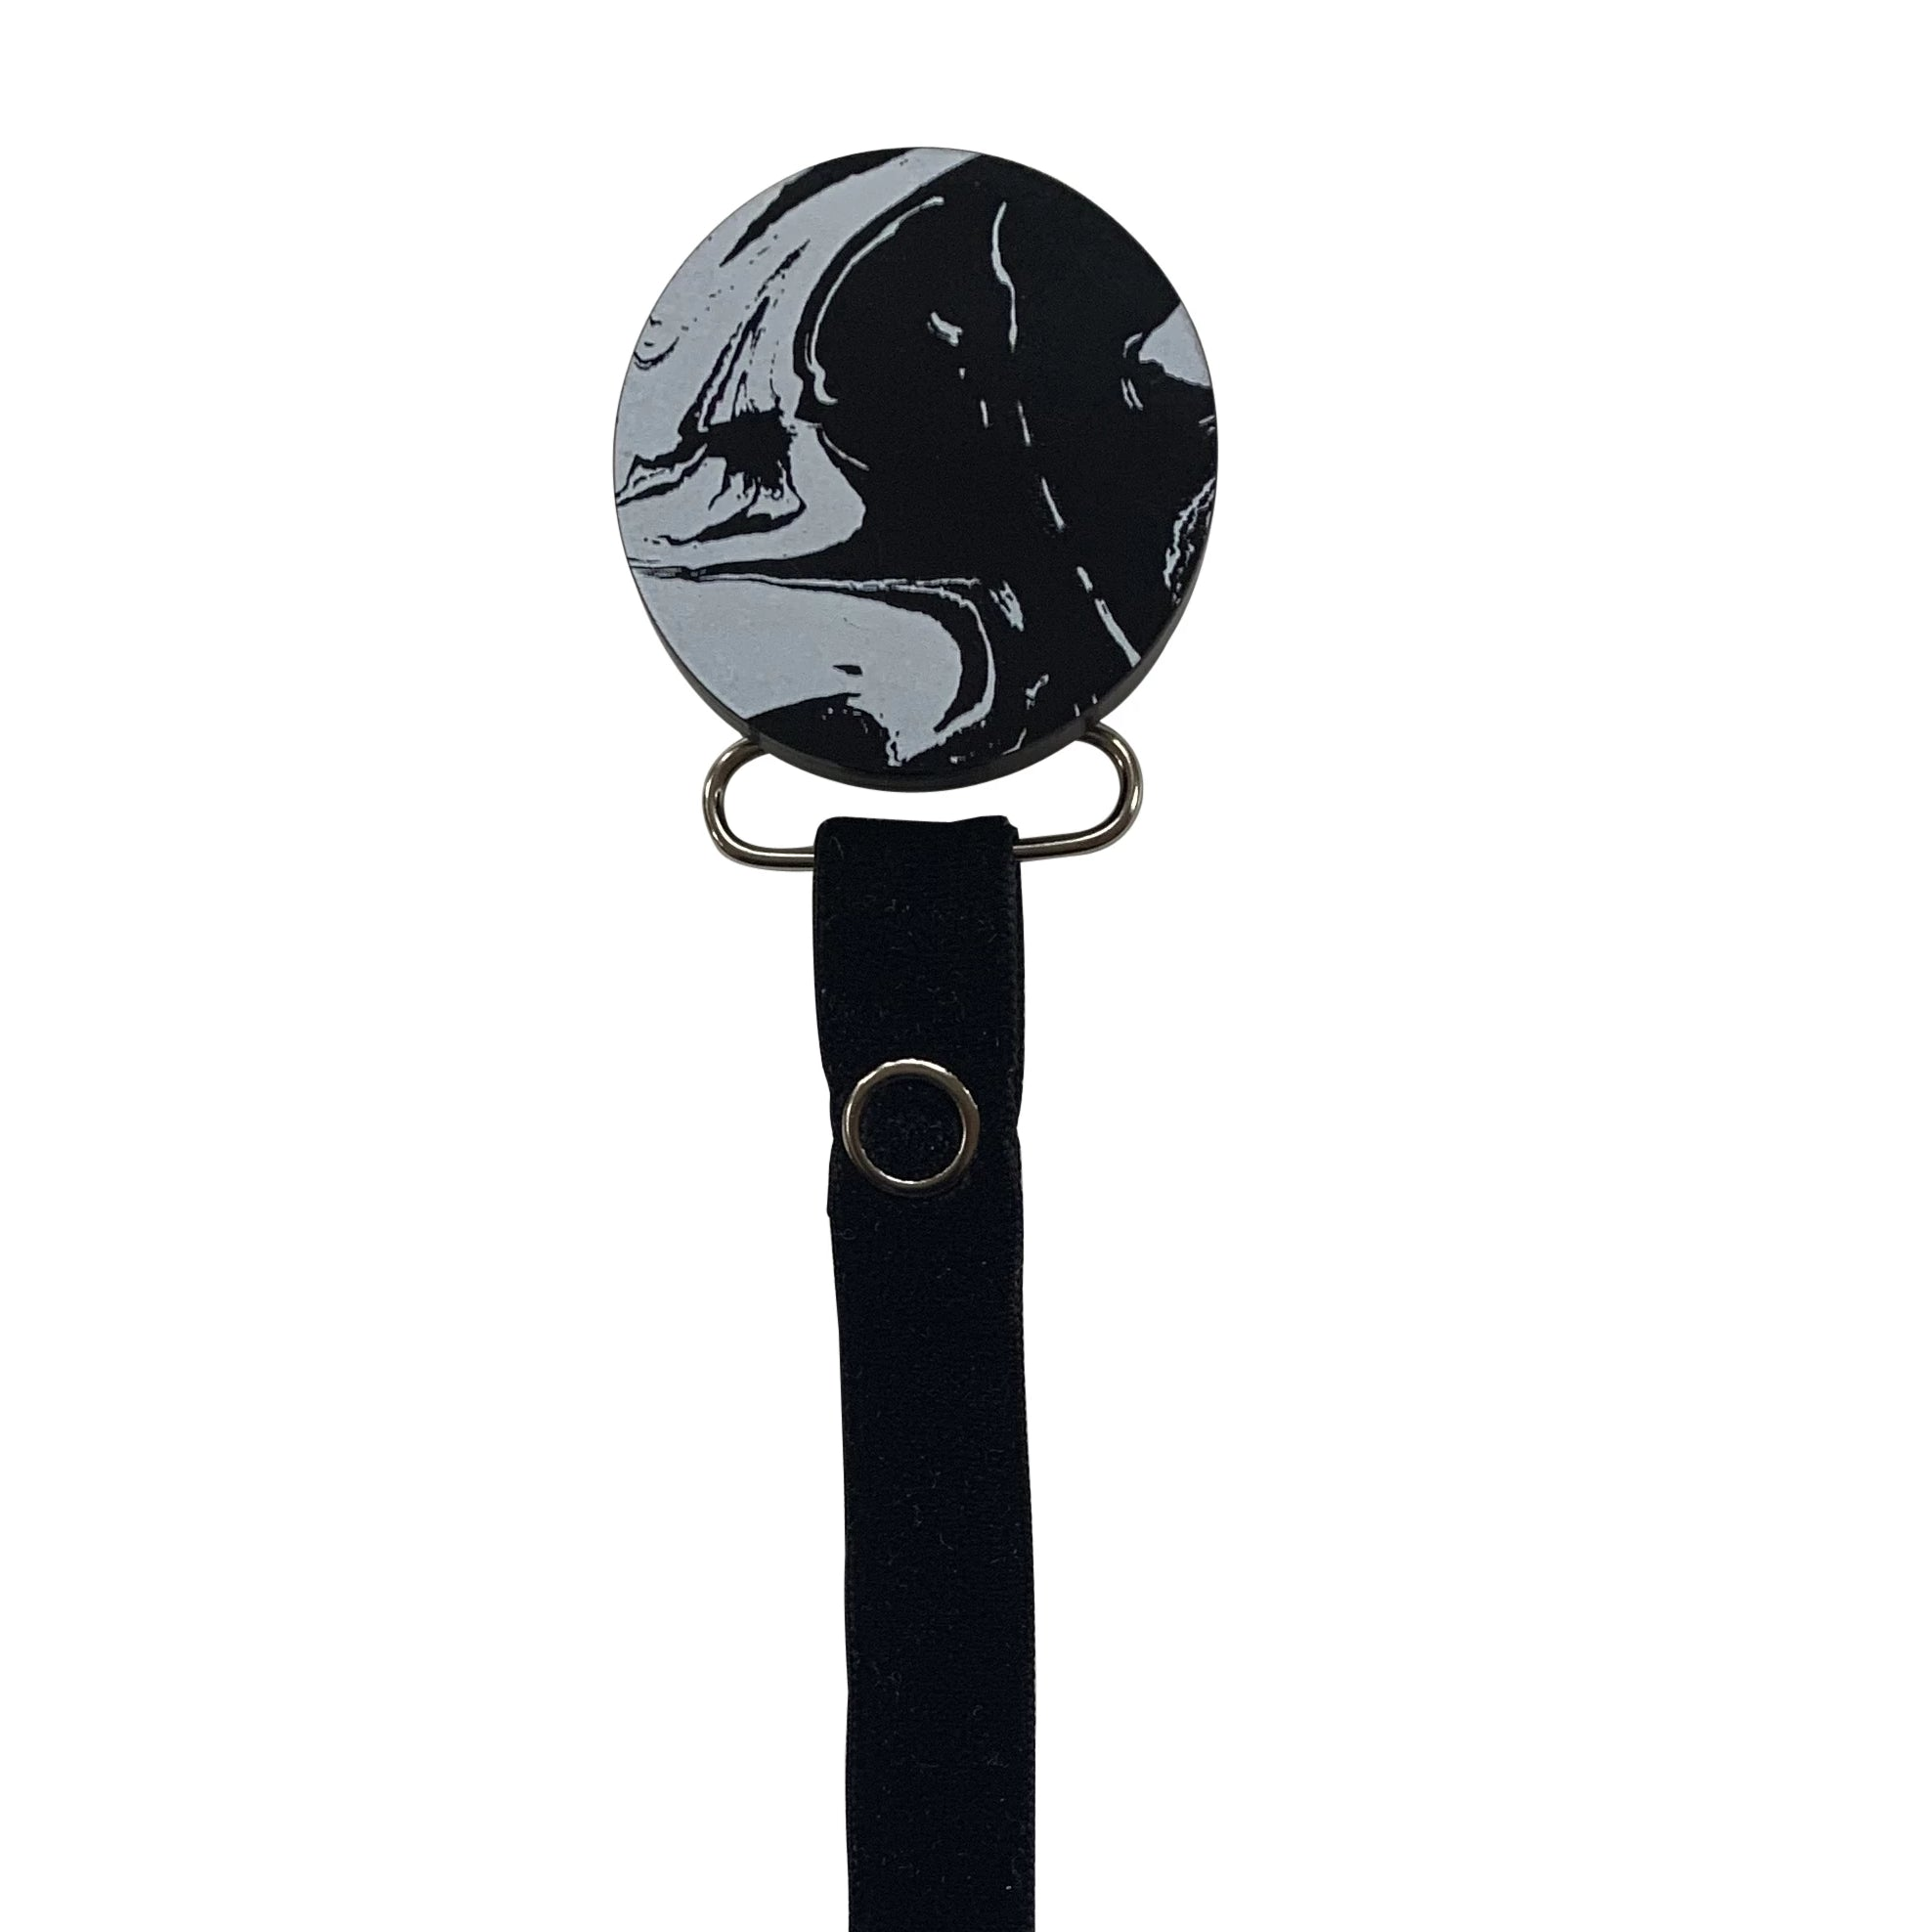 Classy Paci MARBLE black and white round pacifier clip with Bibs b/w glow pacifier GIFT SET